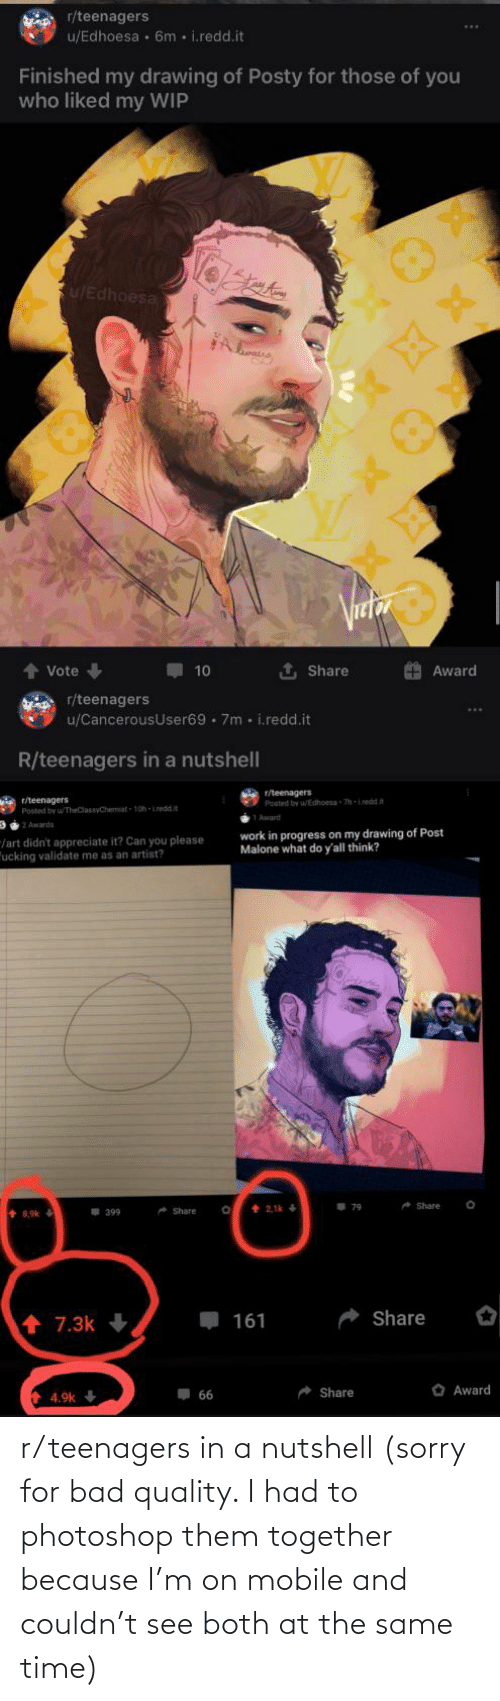 R Teenagers: r/teenagers in a nutshell (sorry for bad quality. I had to photoshop them together because I'm on mobile and couldn't see both at the same time)